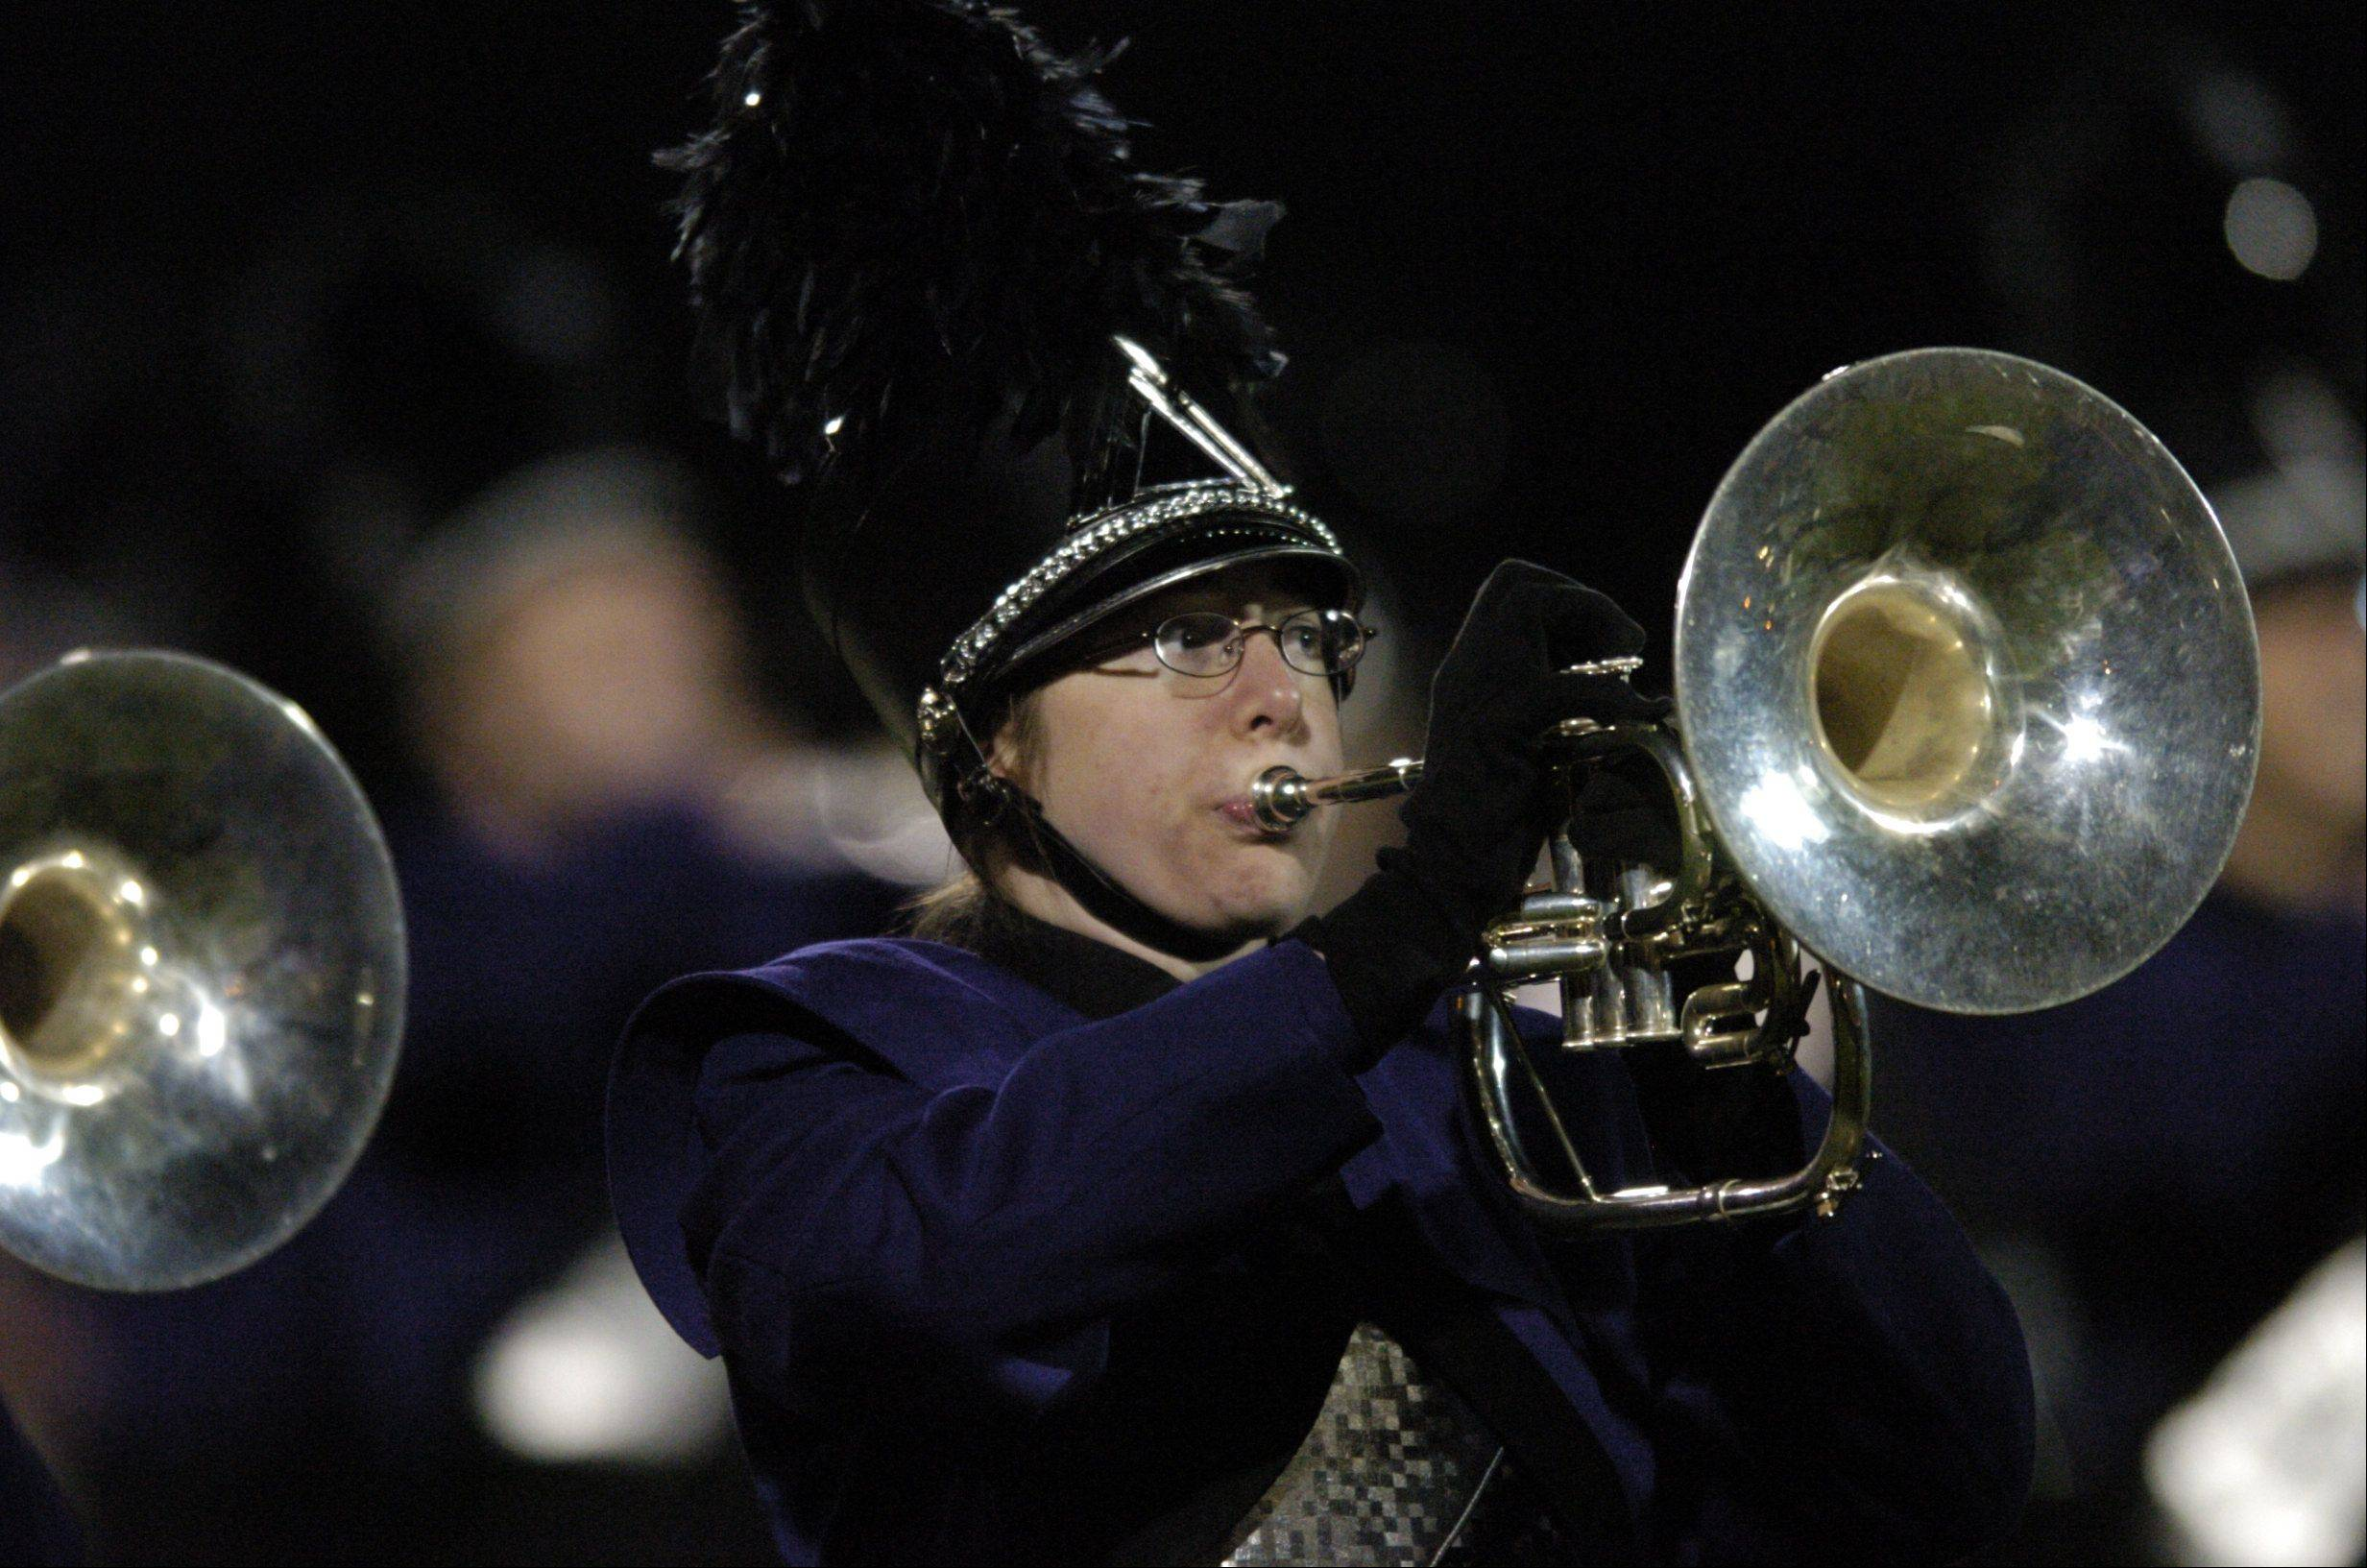 Week 9- Photos from the Hersey vs. Rolling Meadows football game at Rolling Meadows on Friday, October 21st.